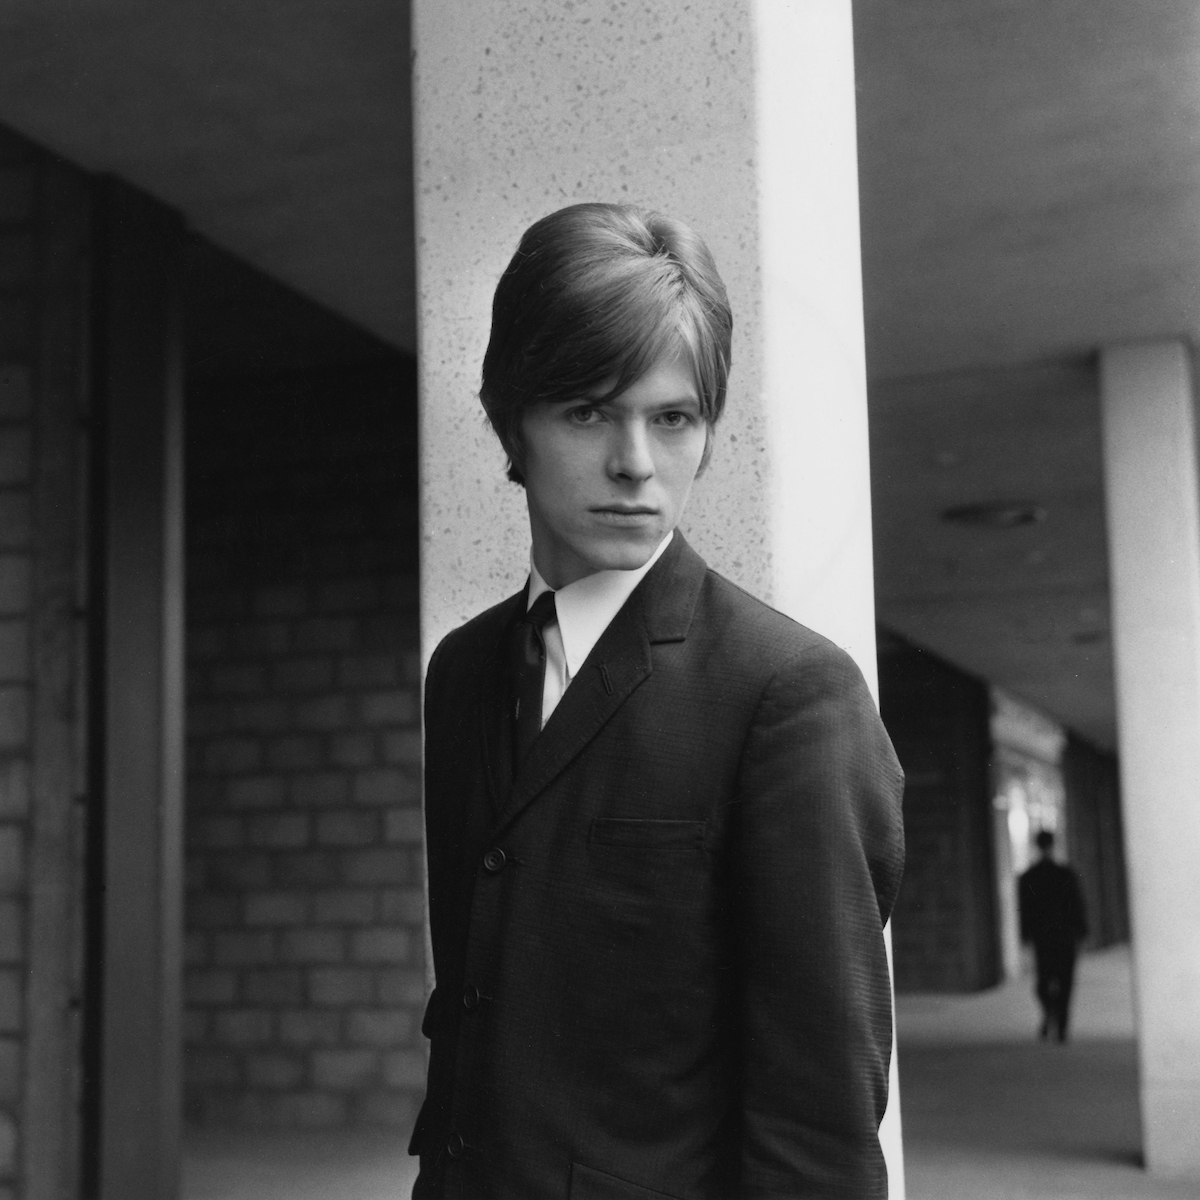 David Bowie, 1966. Photograph by Dough McKenzie. Courtesy of The David Bowie Archive